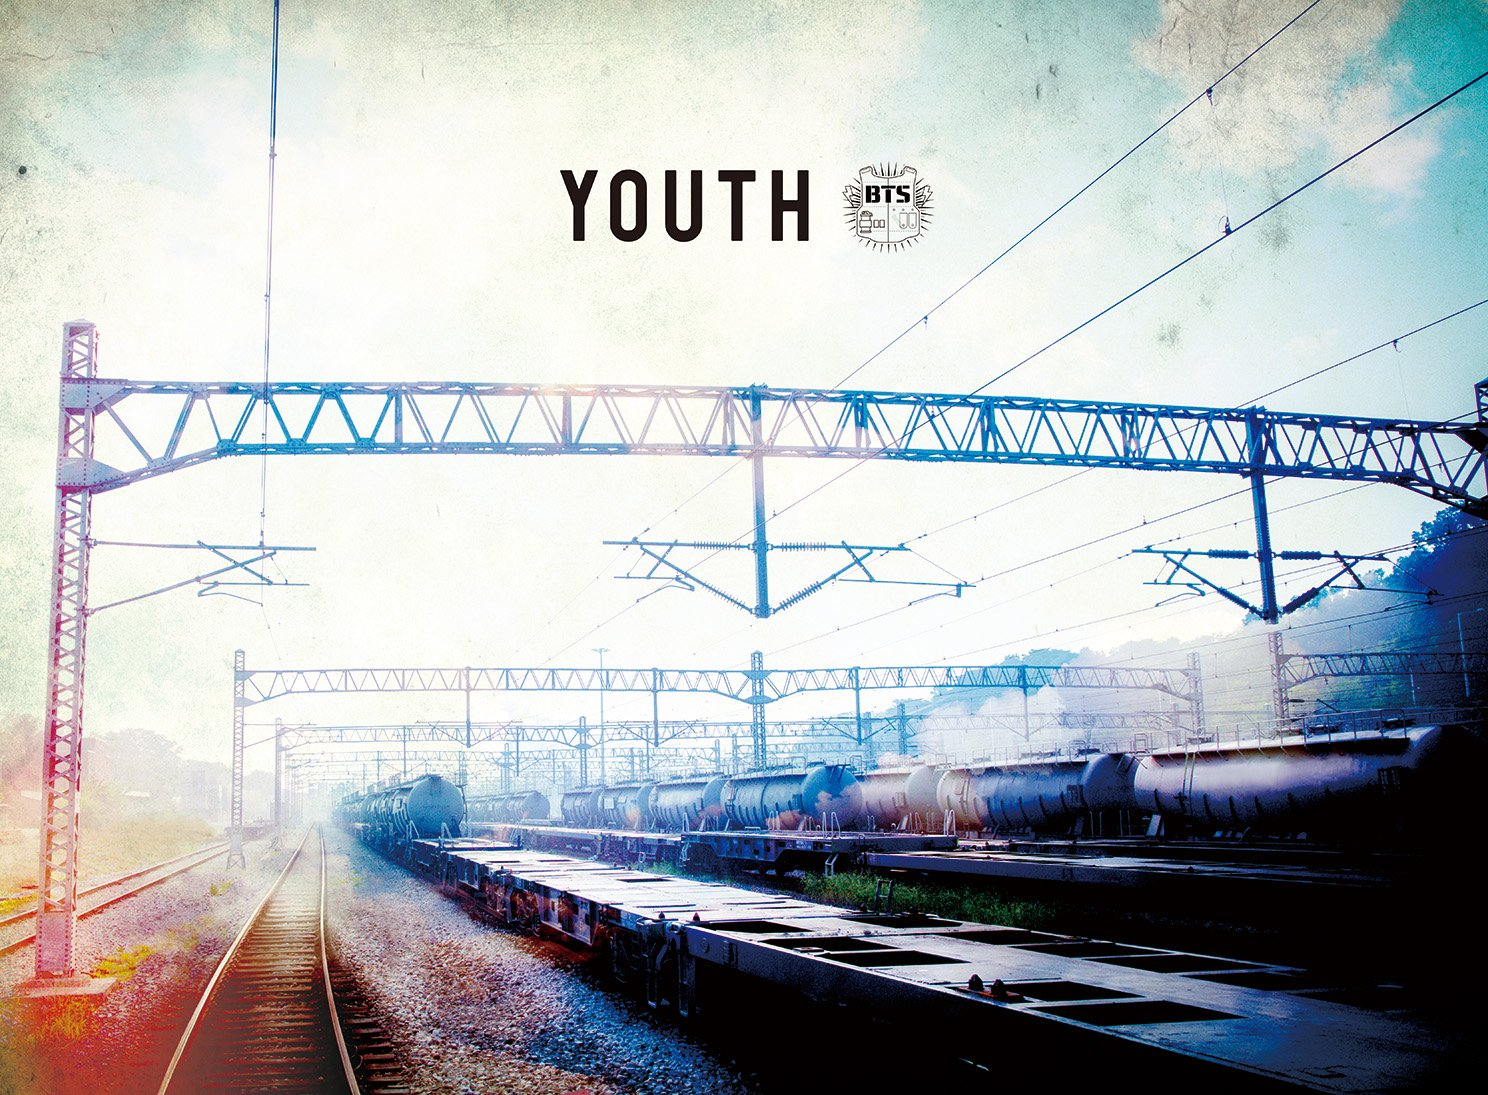 bts youth